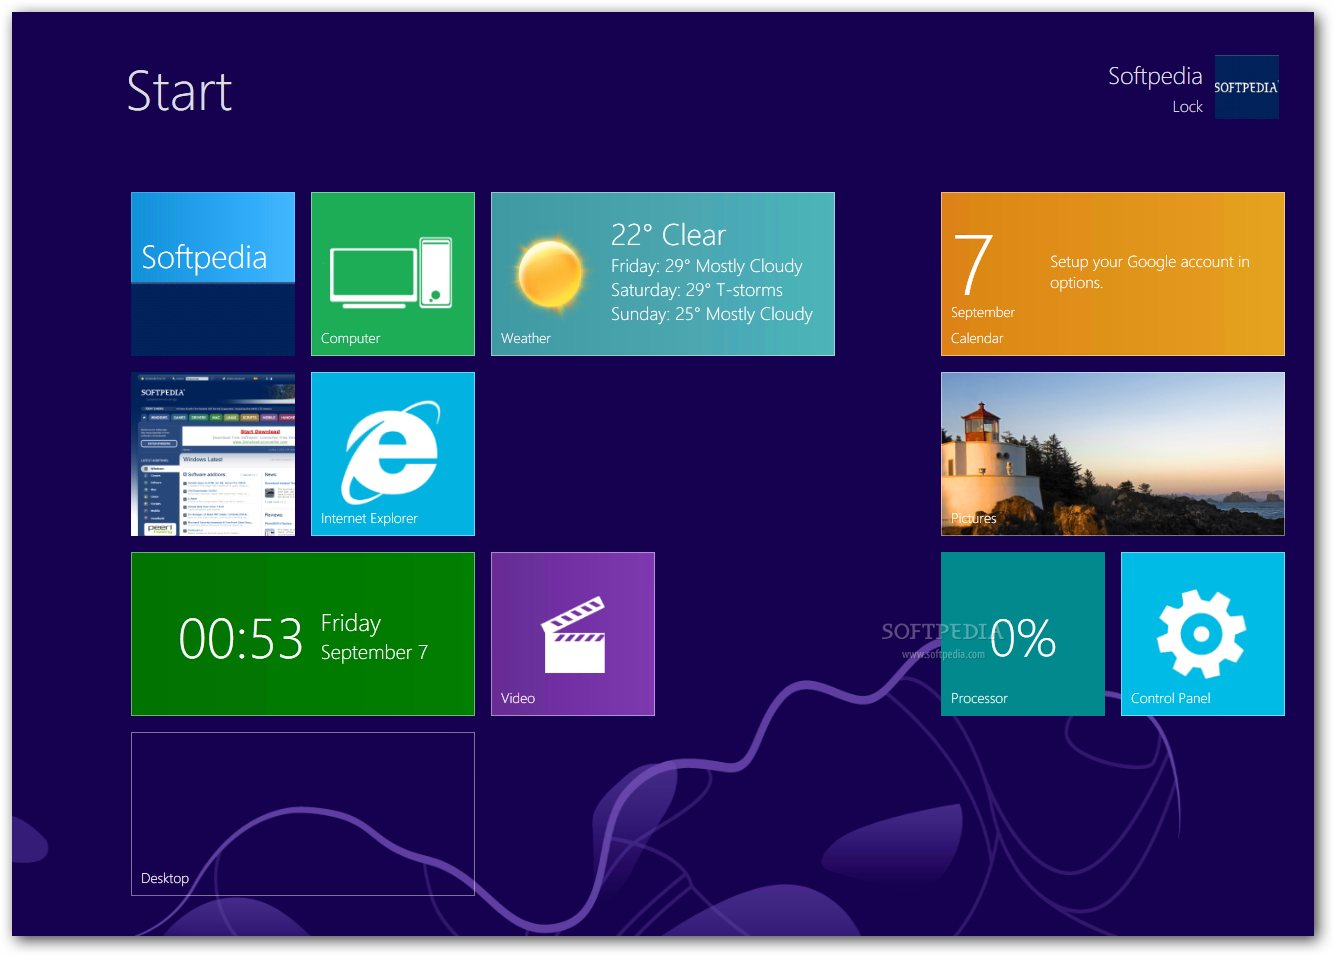 Windows 8/8. 1 complete theme for windows 7 (10/2013) youtube.